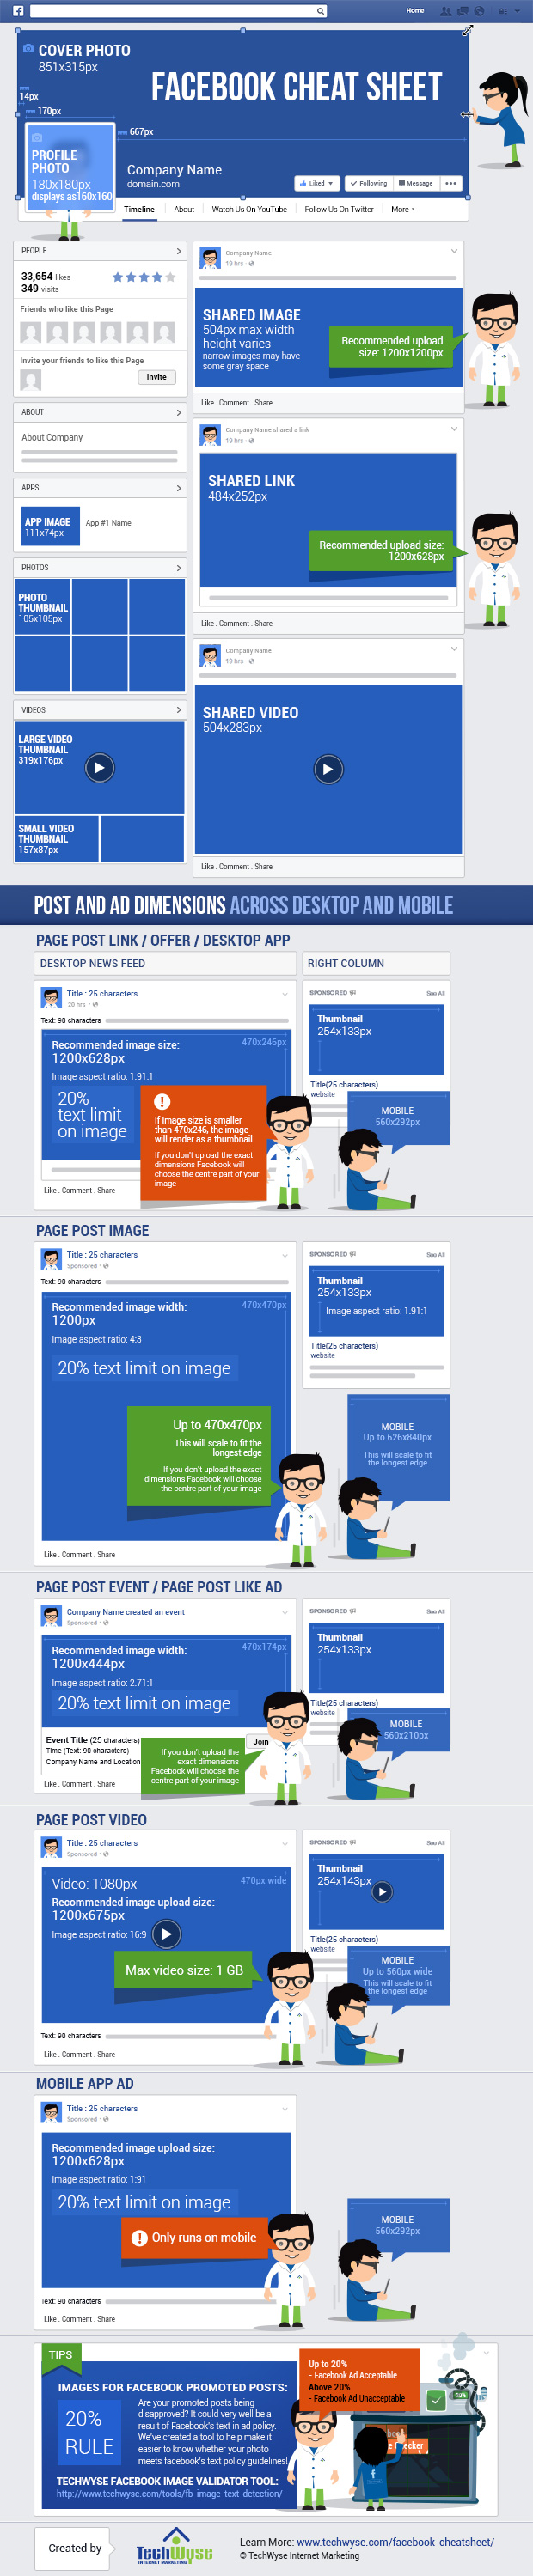 facebook-cheat-sheet-size-and-dimensions